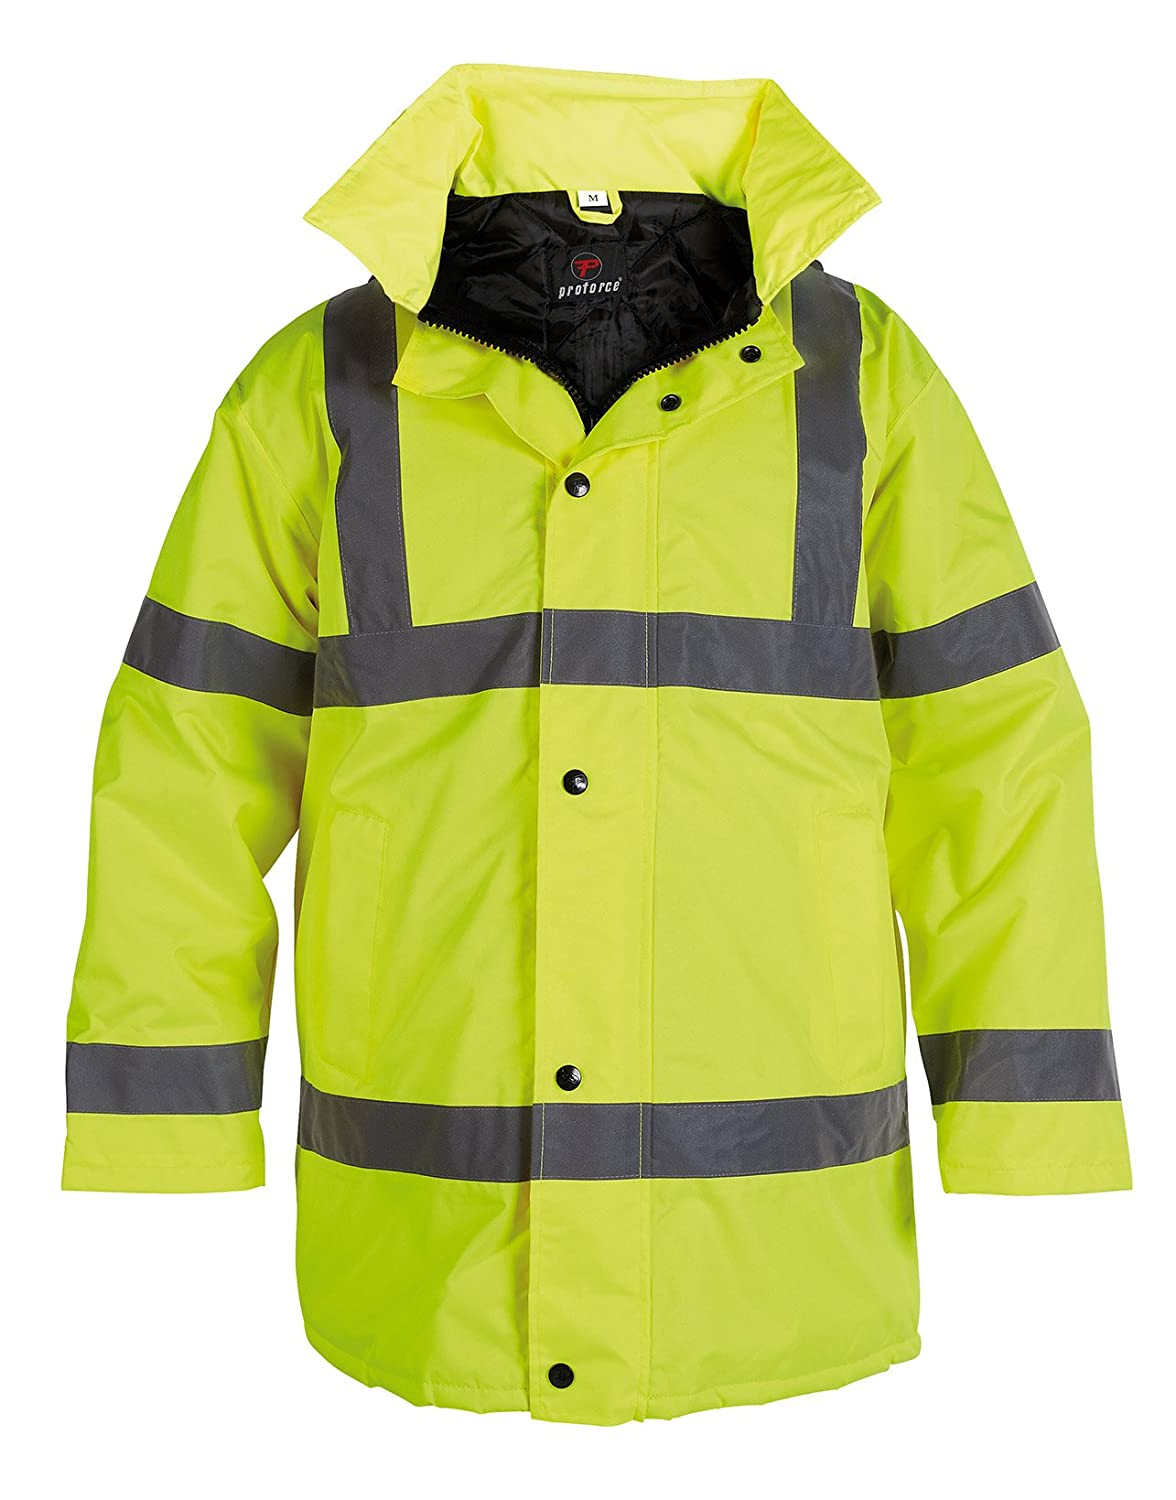 ProForce Class 3 Contractor High Visibility Coat Hi-Vis Hi-Viz Work Site Jacket - Yellow or Orange HJ13